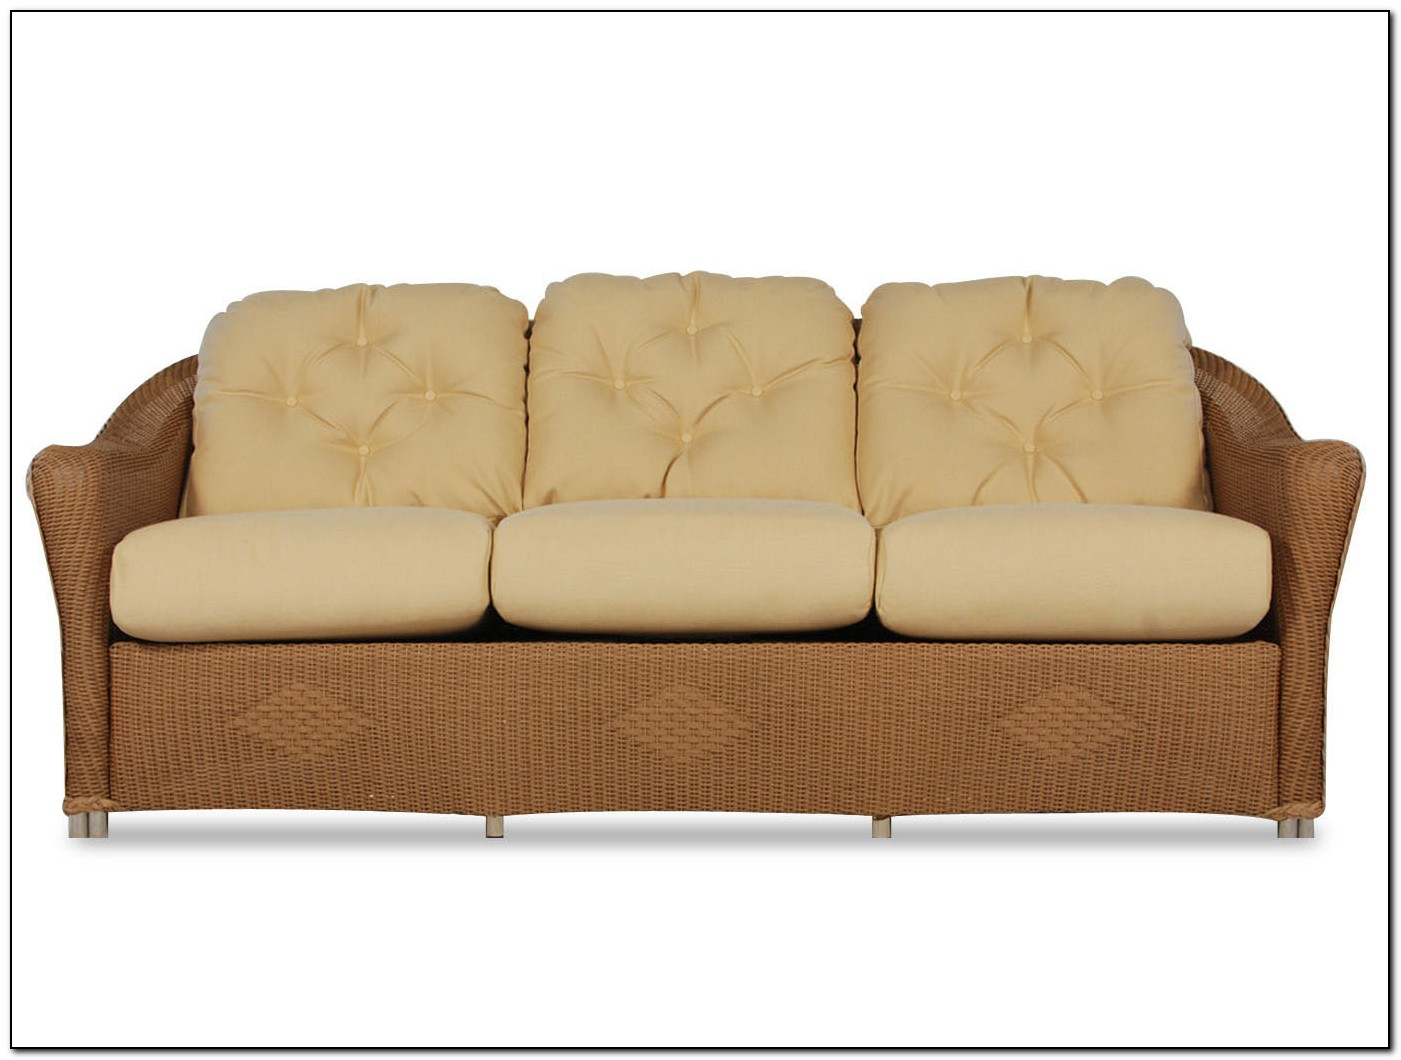 Replacement Sofa Cushions Leather